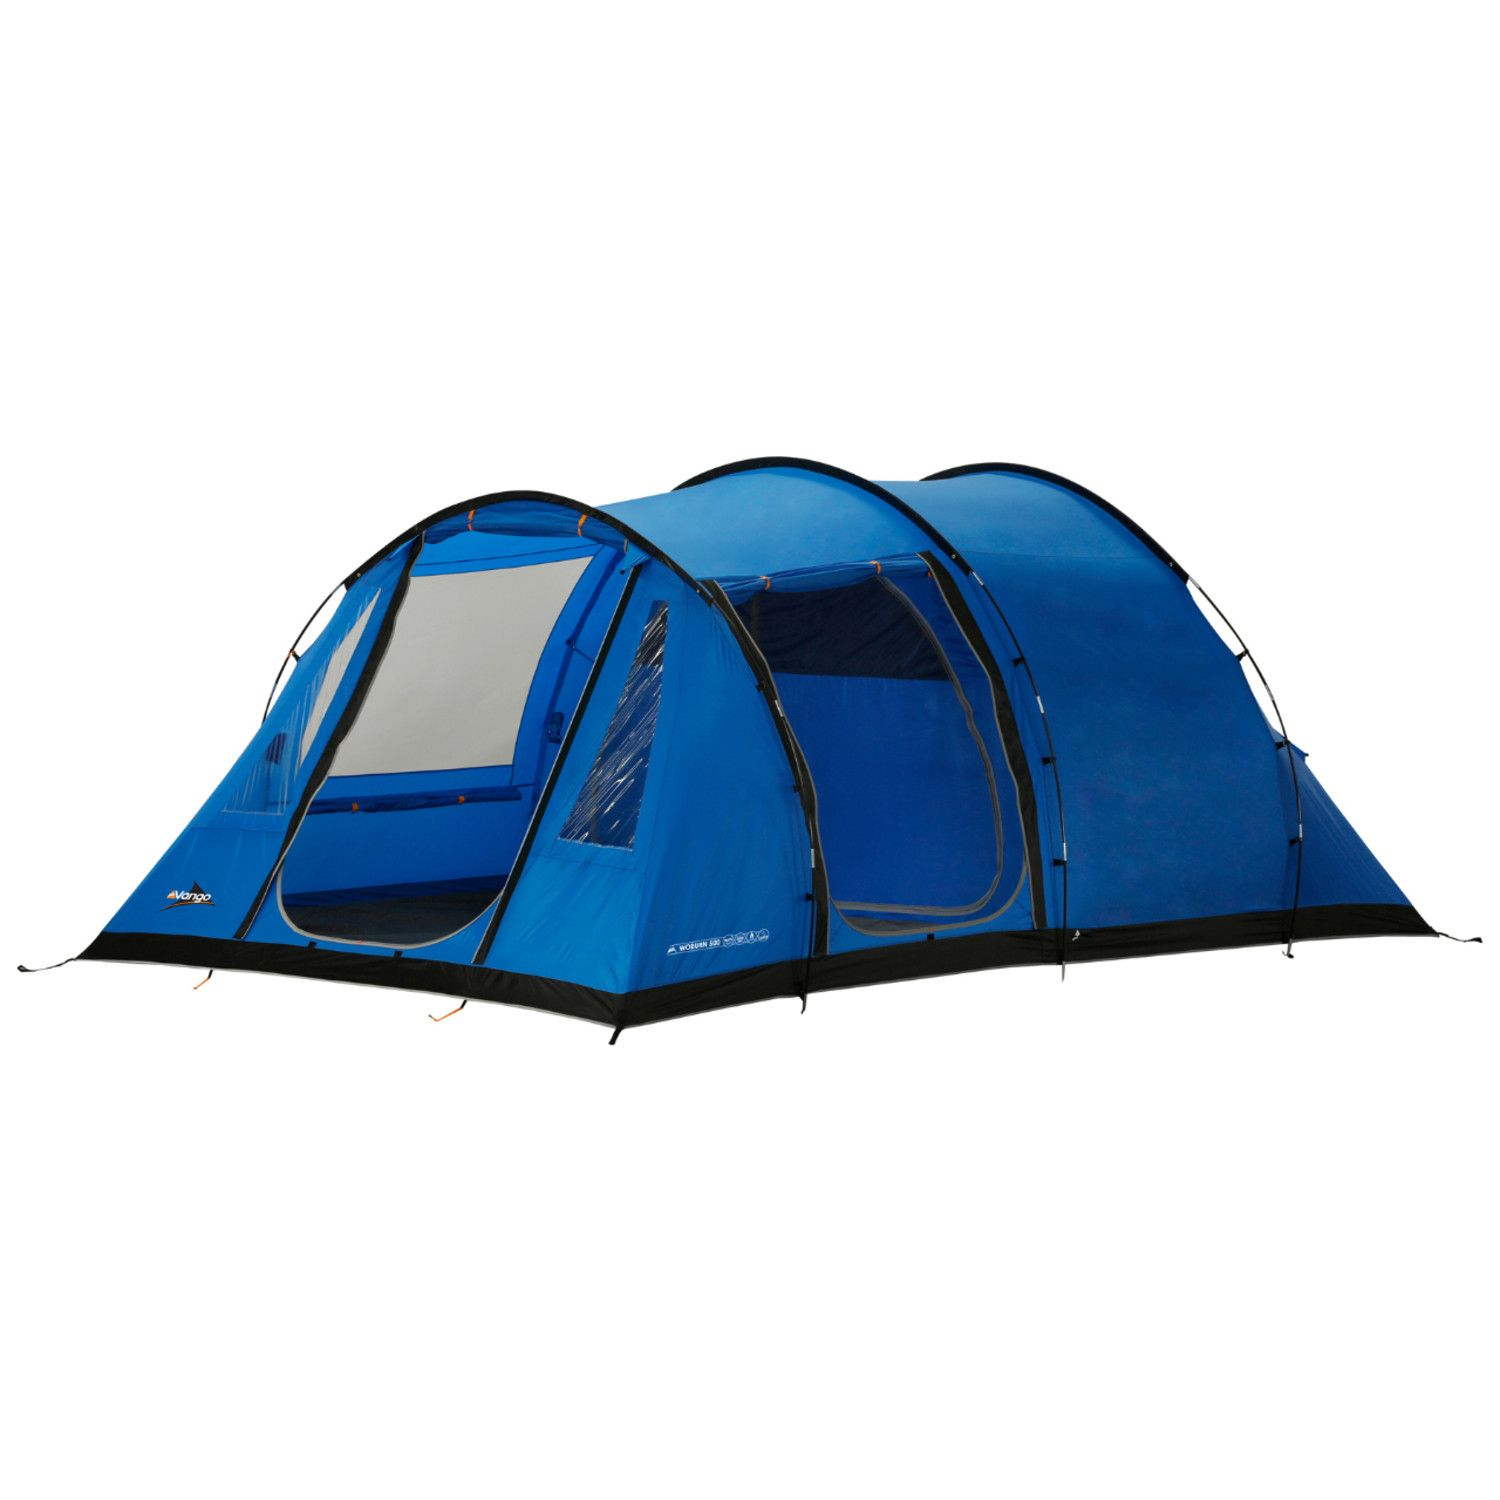 Vango Woburn 500 Tent Vango Tents Weekend Tents 5 Man Tents  sc 1 st  Pinterest & Vango Woburn 500 Tent Vango Tents Weekend Tents 5 Man Tents ...